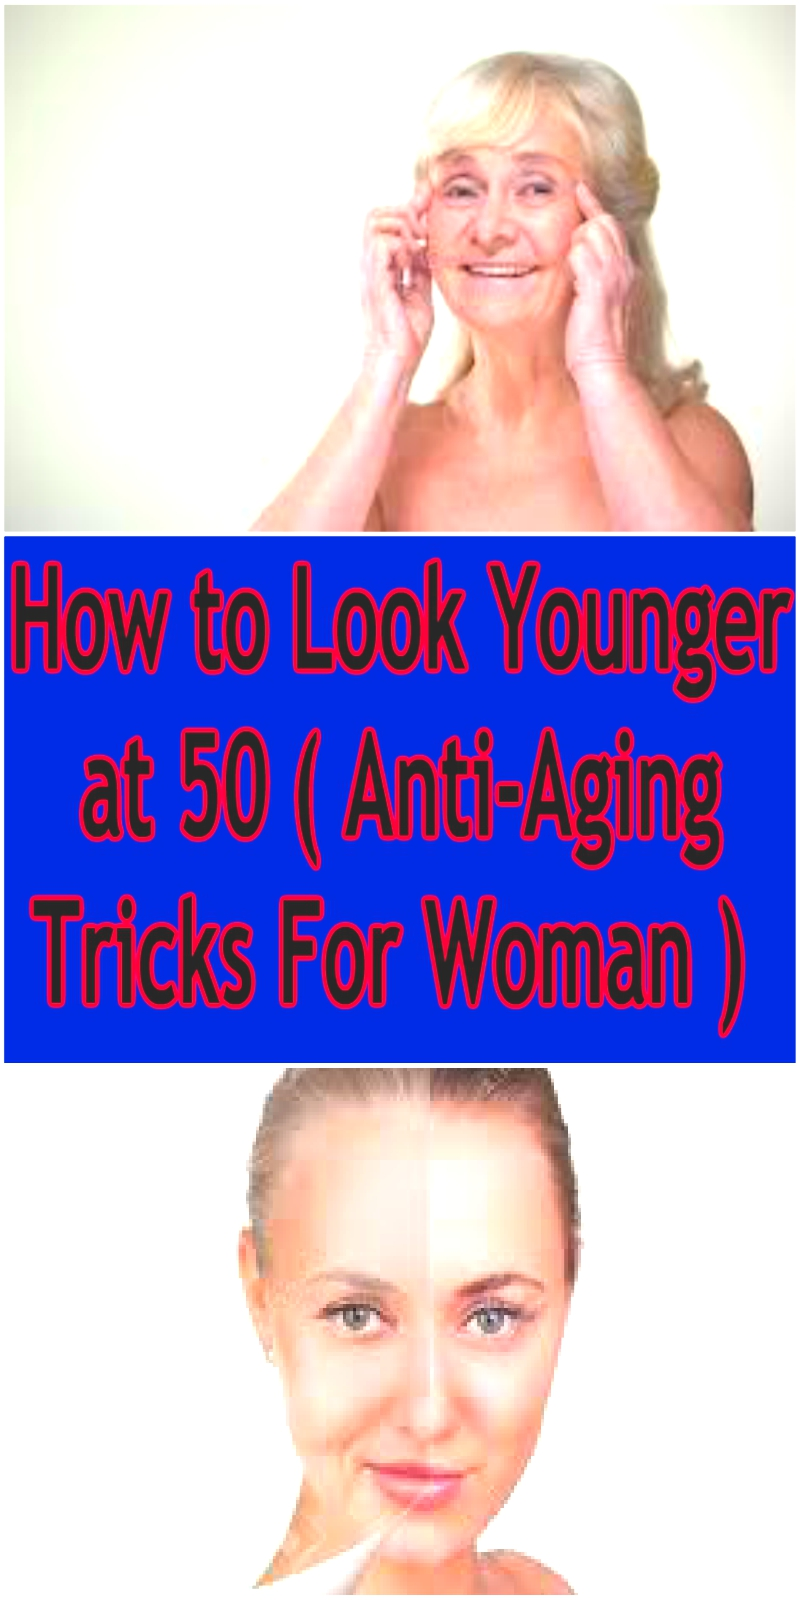 How to Look Younger at 50 ( AntiAging Tricks For Woman